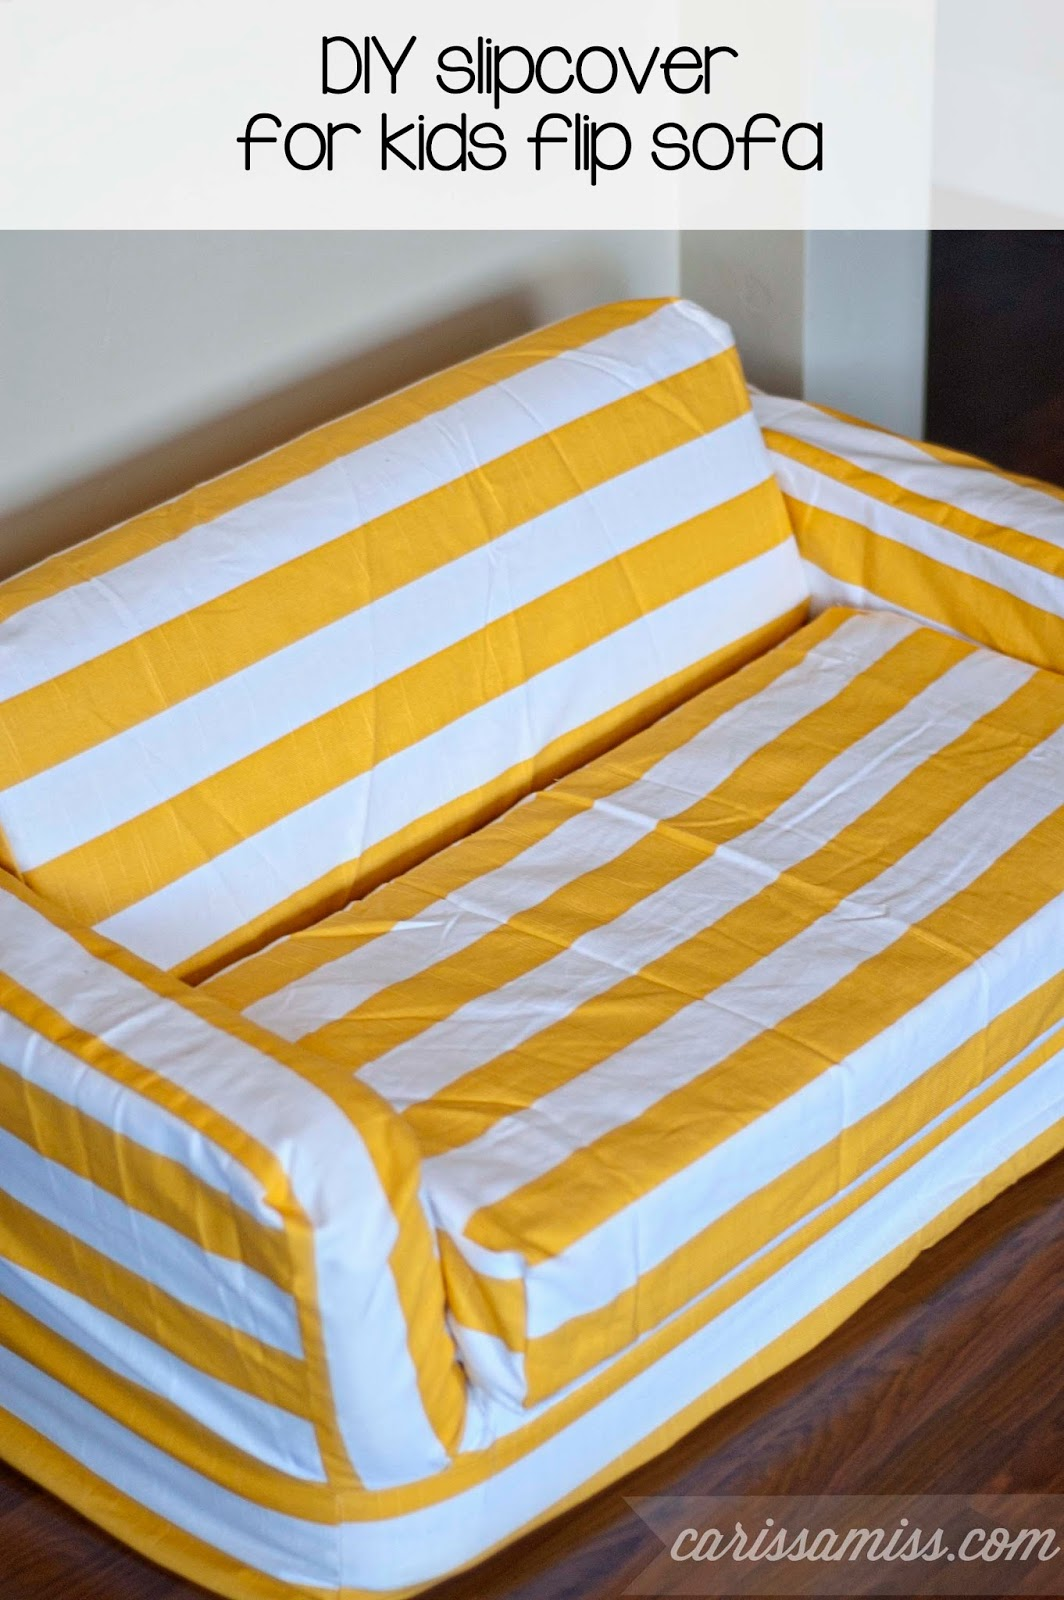 Carissa Miss: DIY slipcover for kids flip sofa #creativebuzz